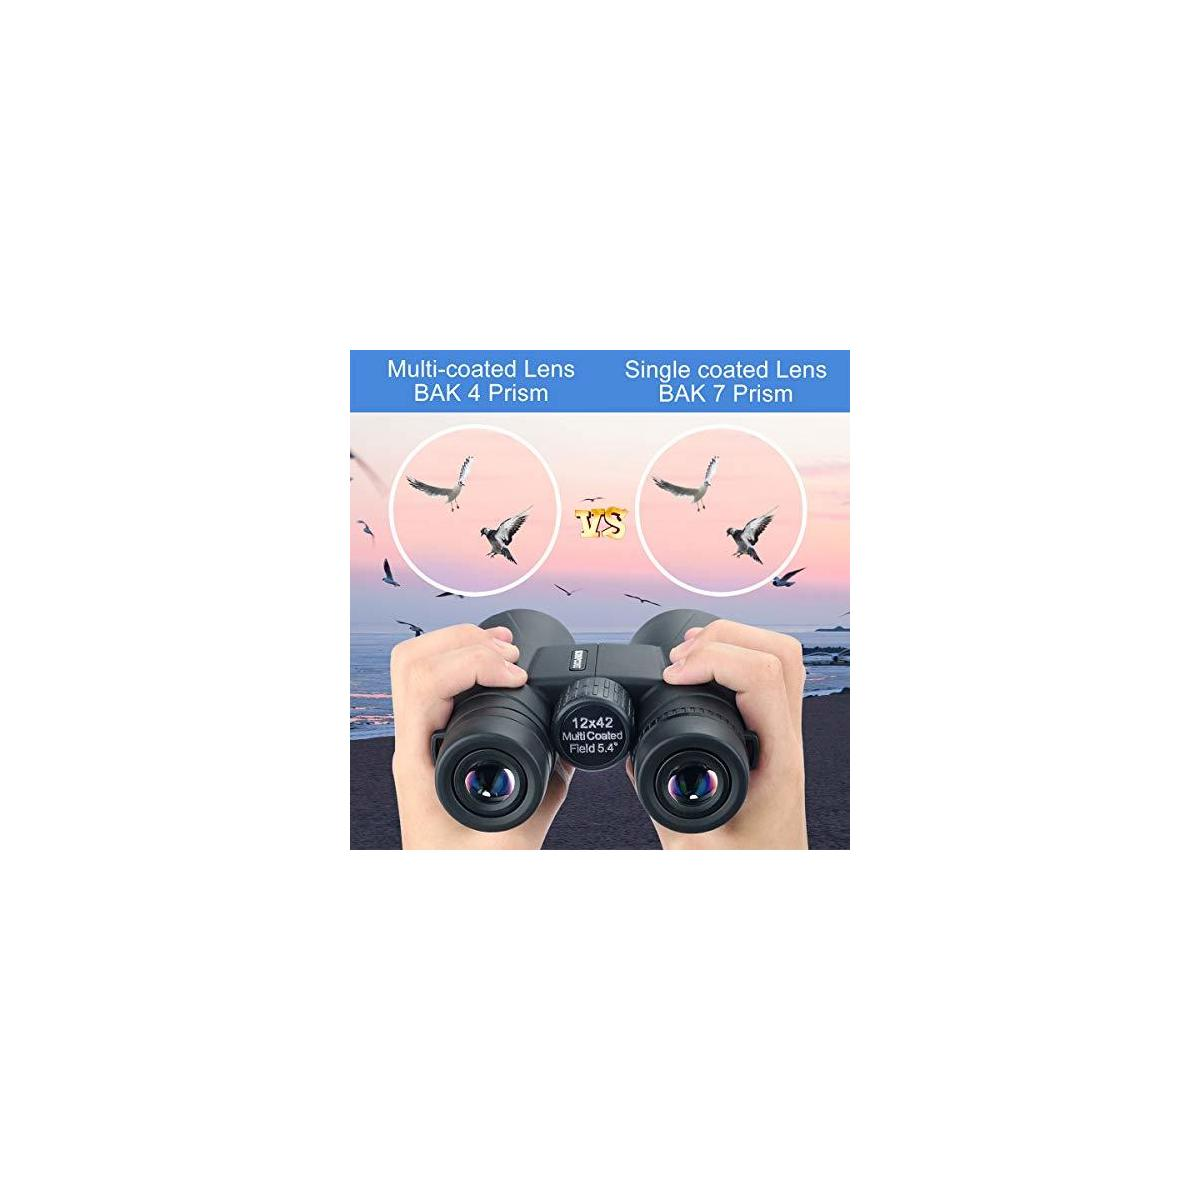 12x42 Roof Prism Binoculars for Adults, Portable and Waterproof Compact Binoculars with Low Light Night Vision, BAK4 Prism FMC Lens HD Clear View for Bird Watching, Hunting, Travel